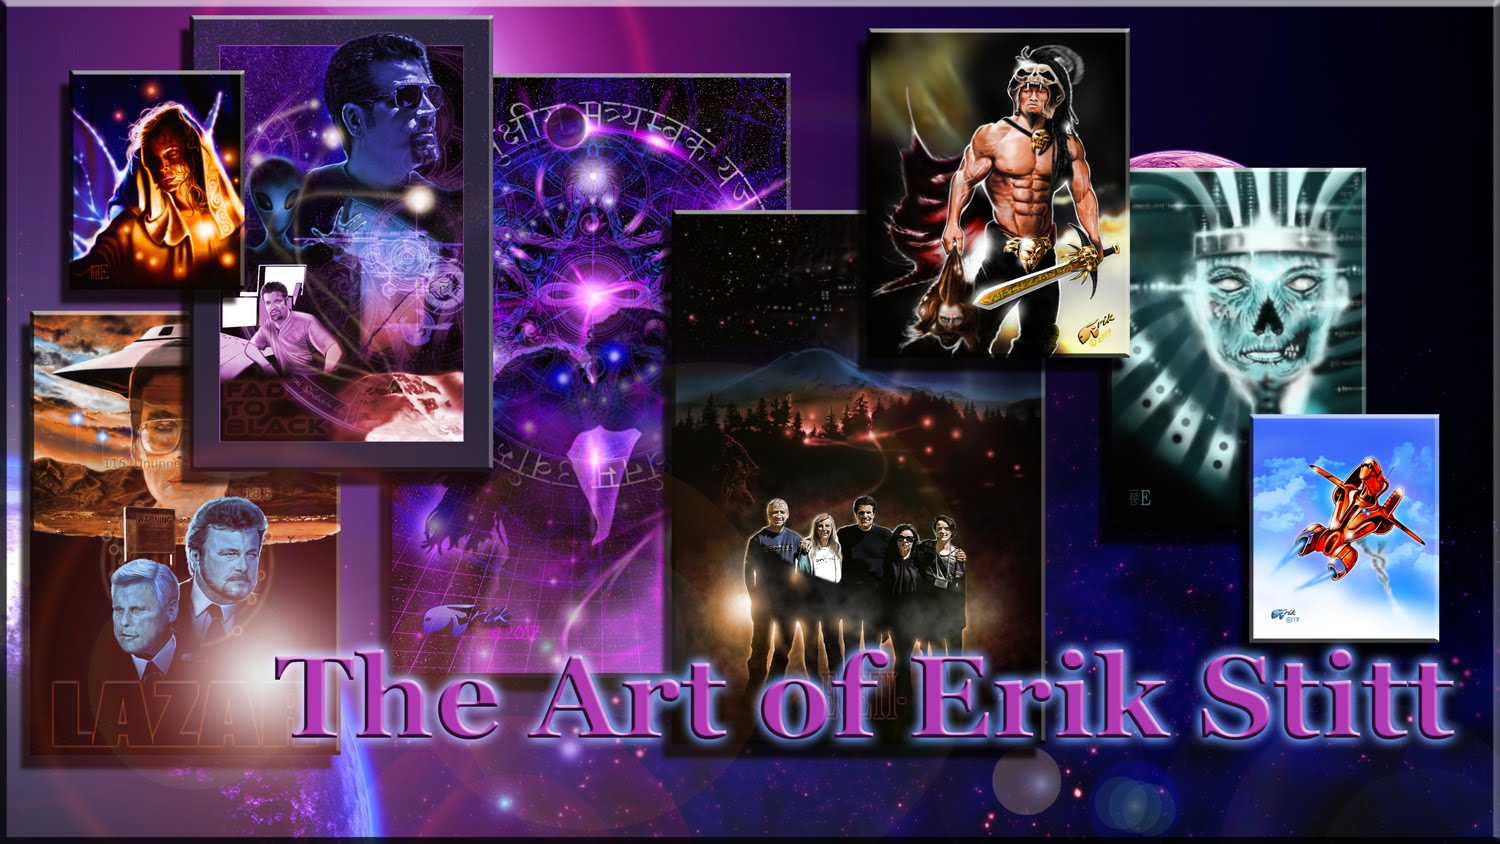 The Art of Erik Stitt